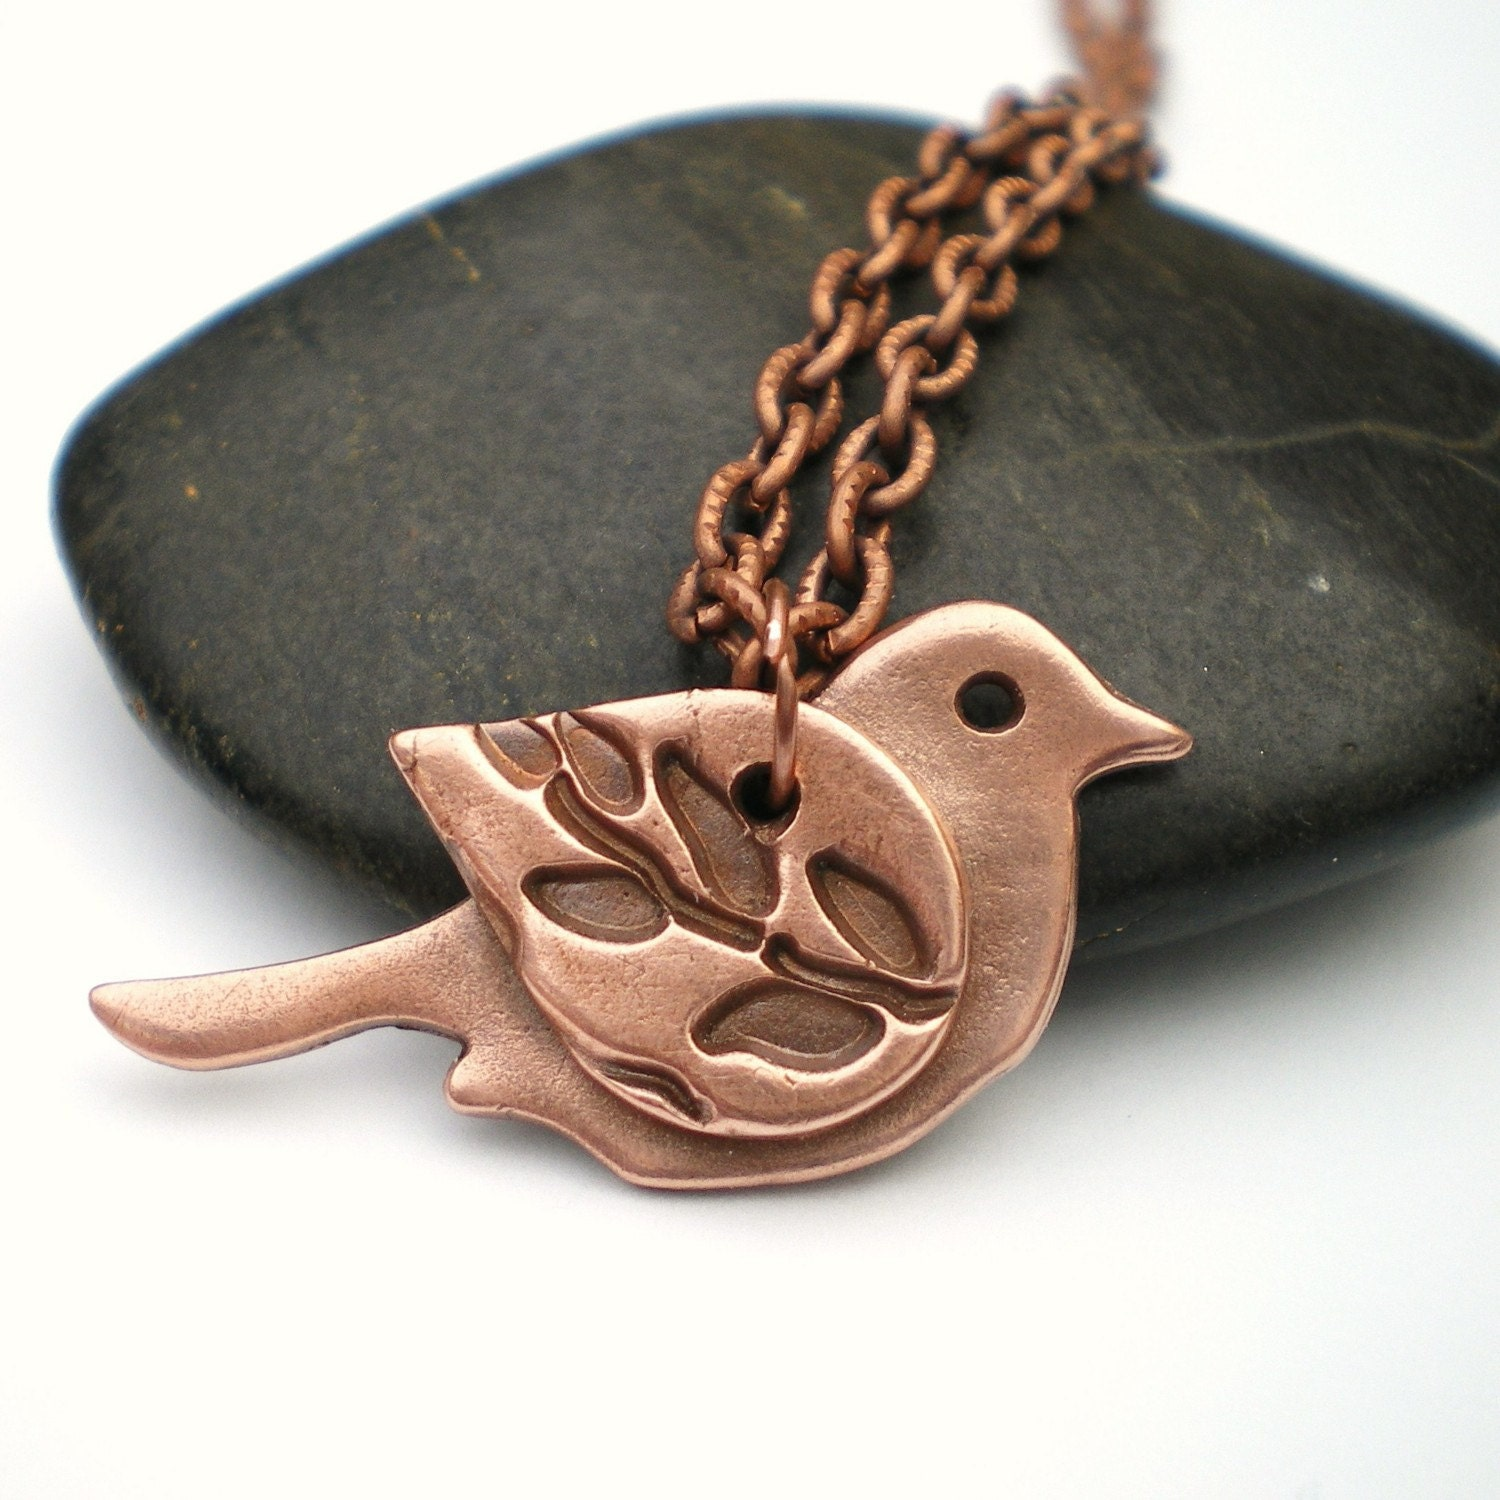 Copper Bird Leaf Pendant handmade in the UK, flies internationally